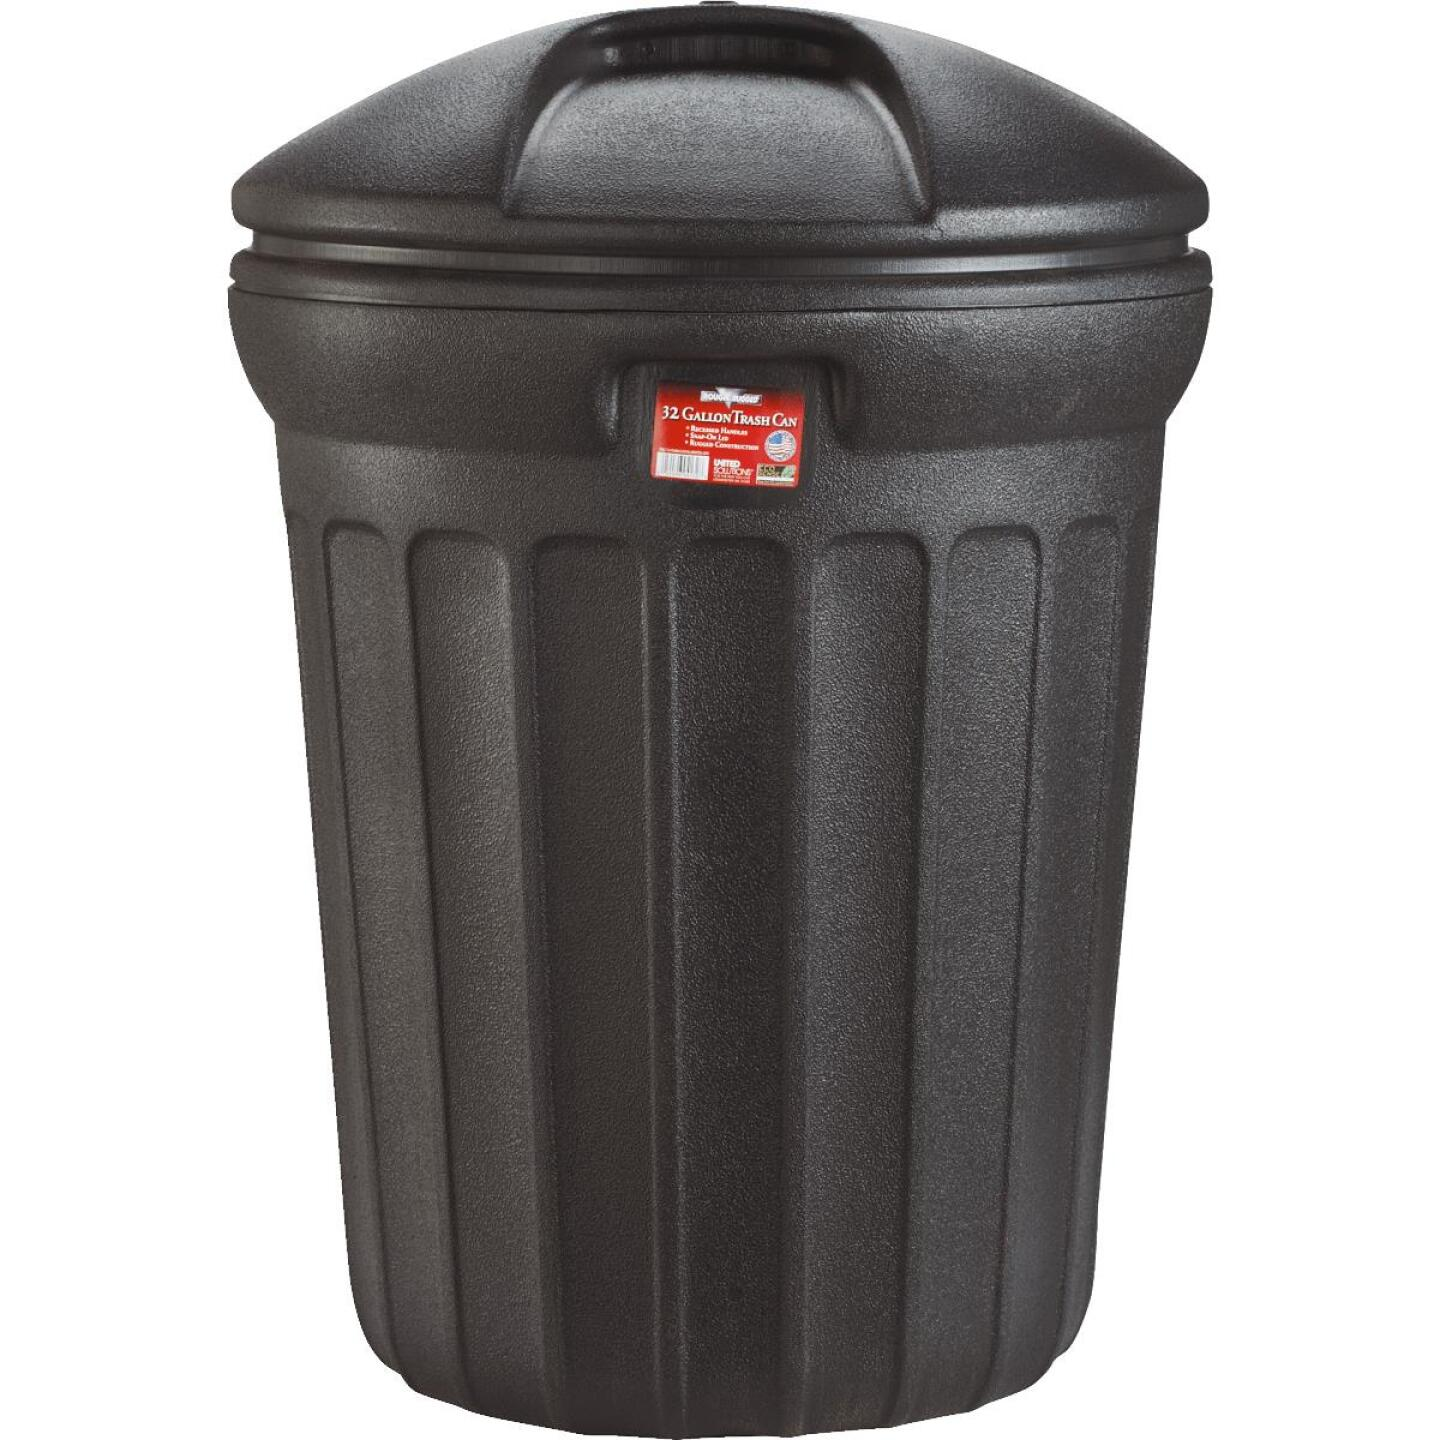 United Solutions Rough & Rugged 32 Gal. Black Trash Can with Lid Image 3